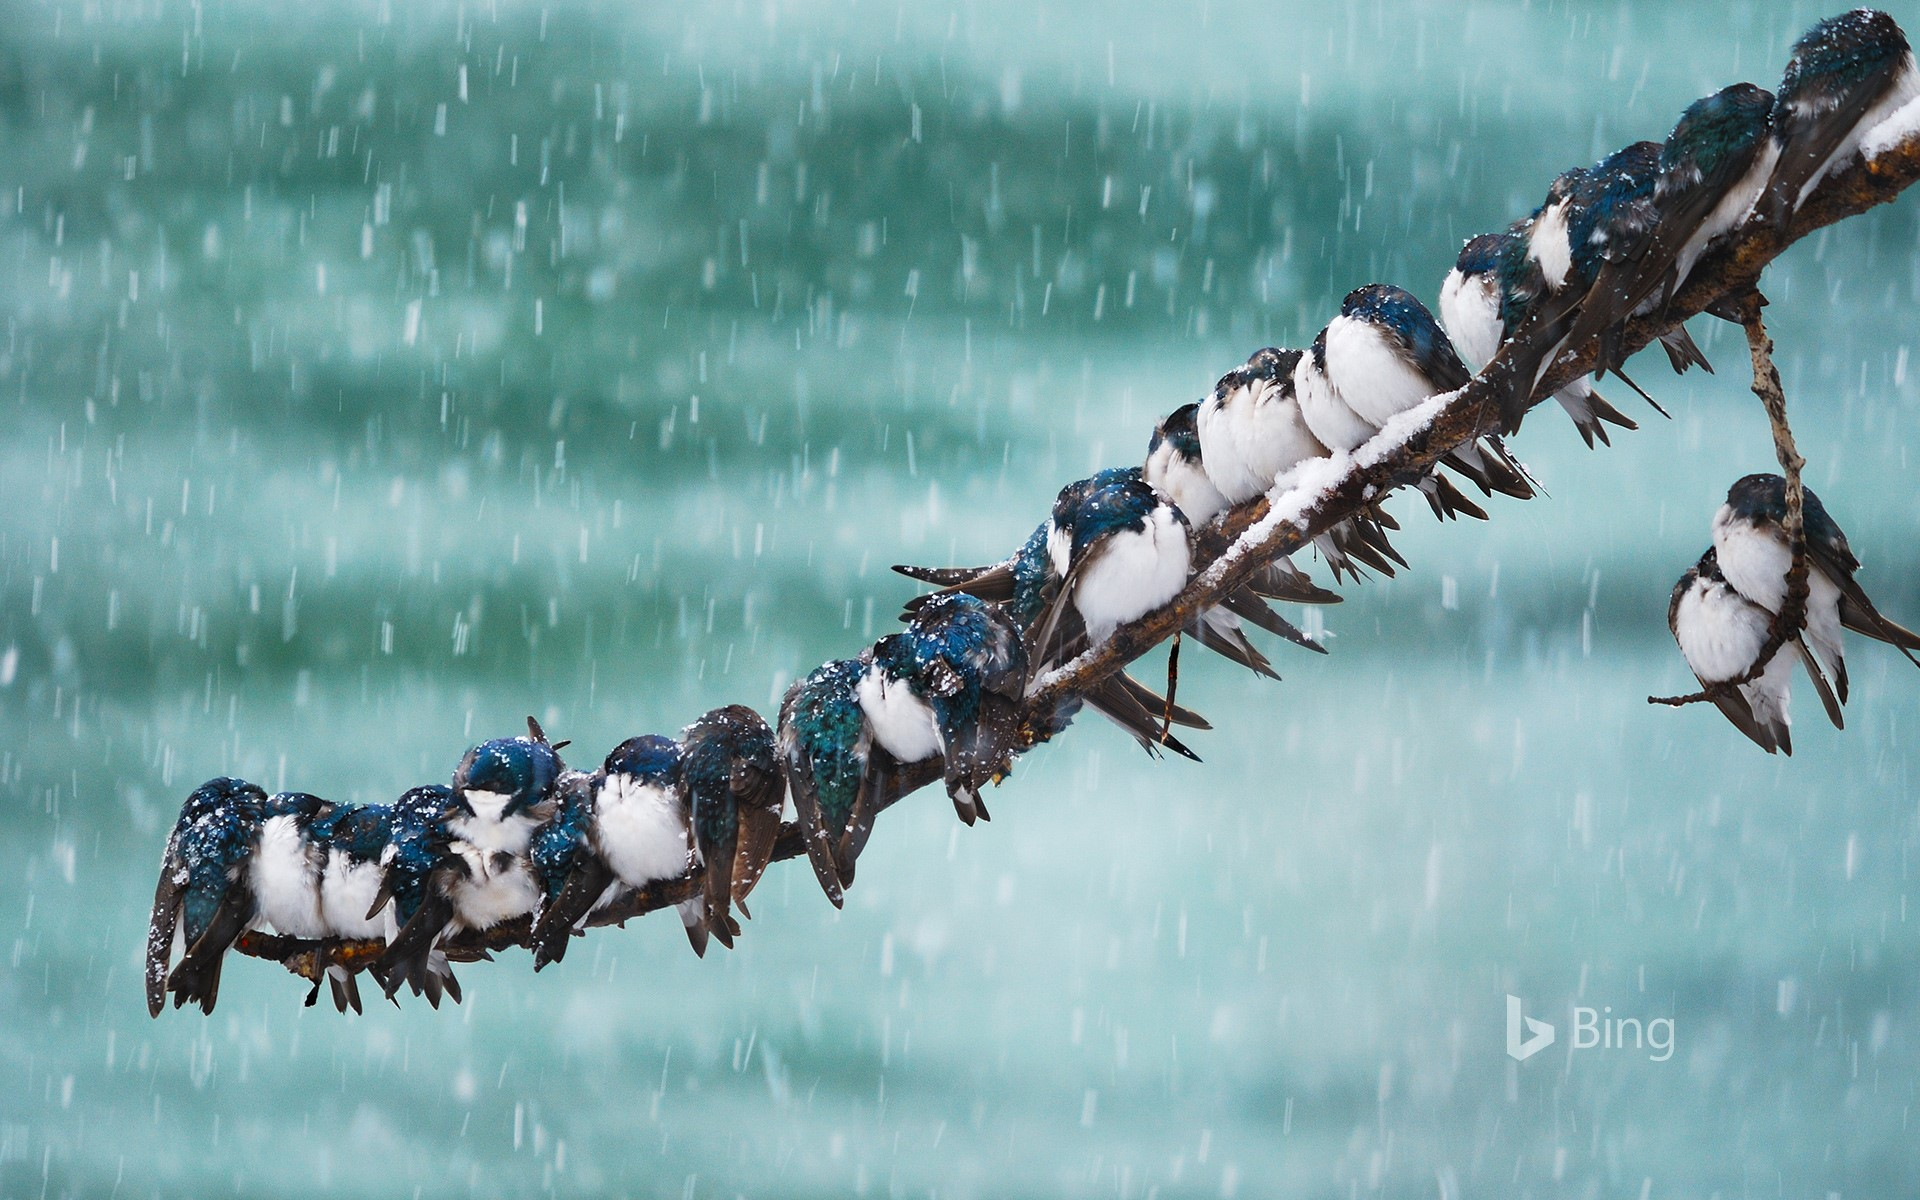 Tree swallows in a spring snowstorm in Whitehorse, Yukon, Canada